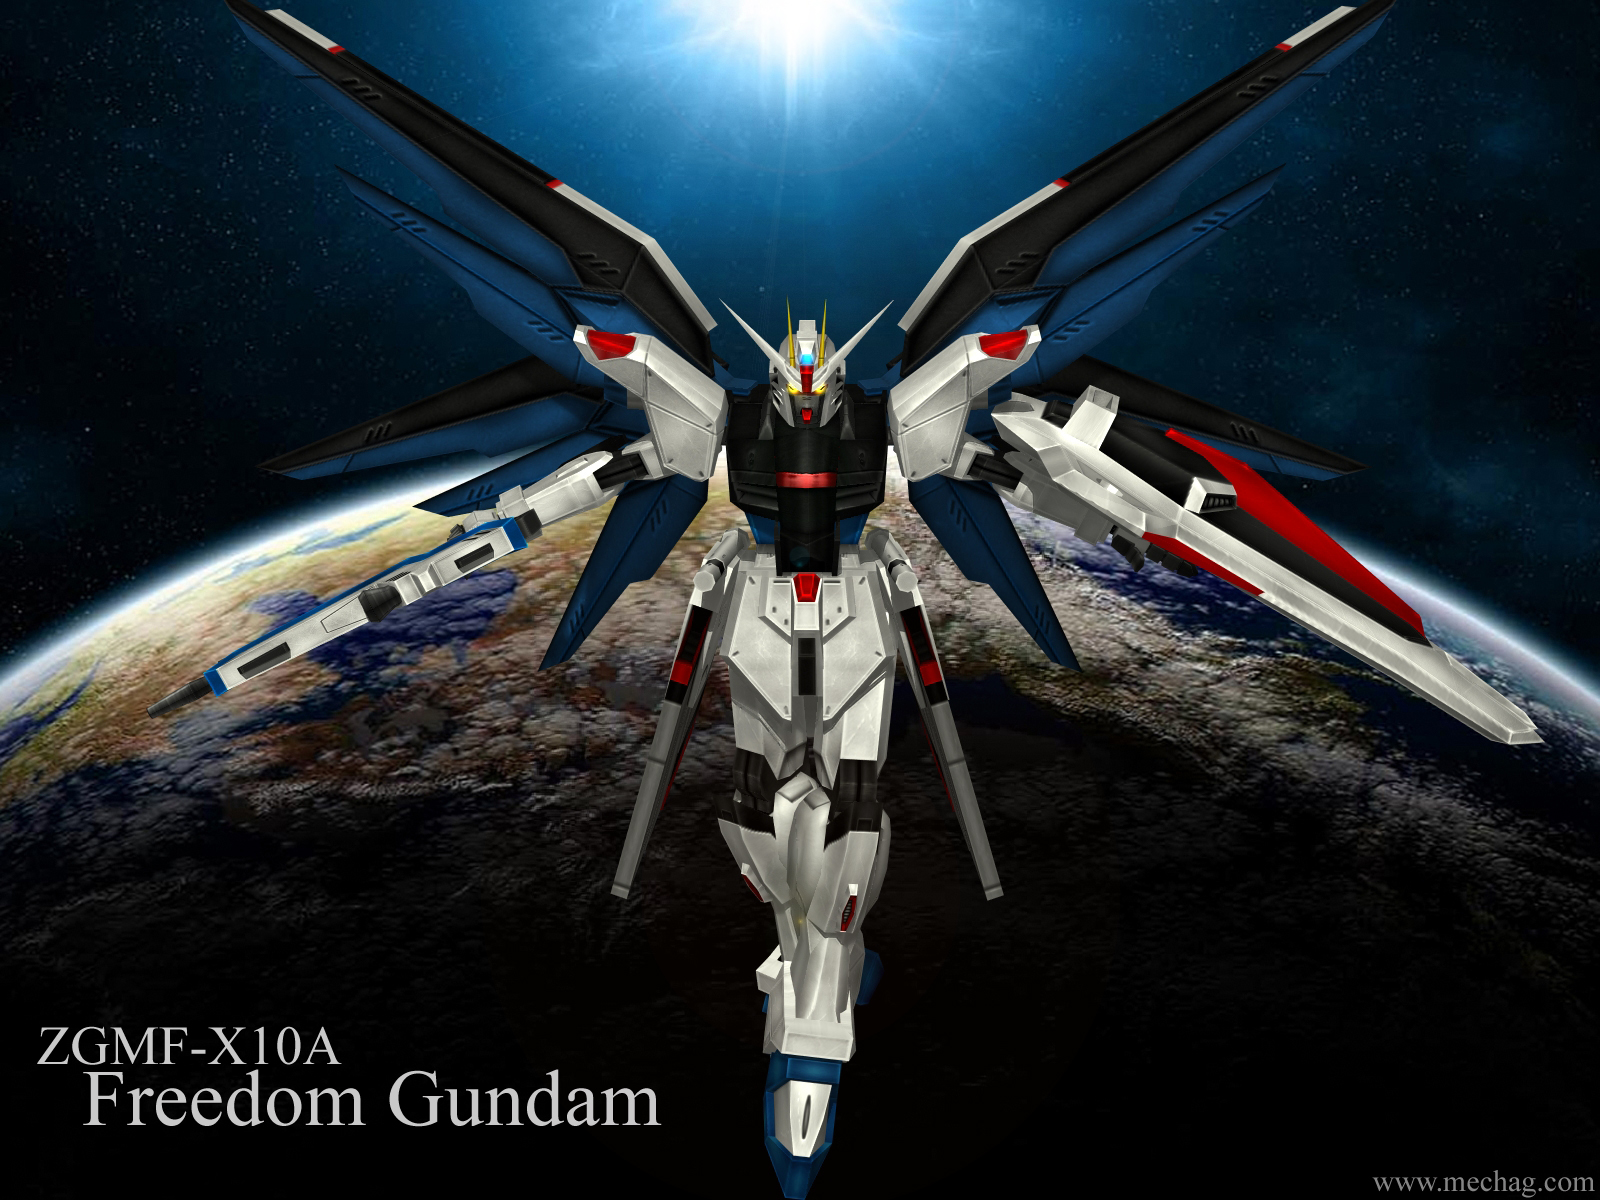 Mobile Suit Gundam SEED Wallpaper: ZGMF-X10A Freedom ...